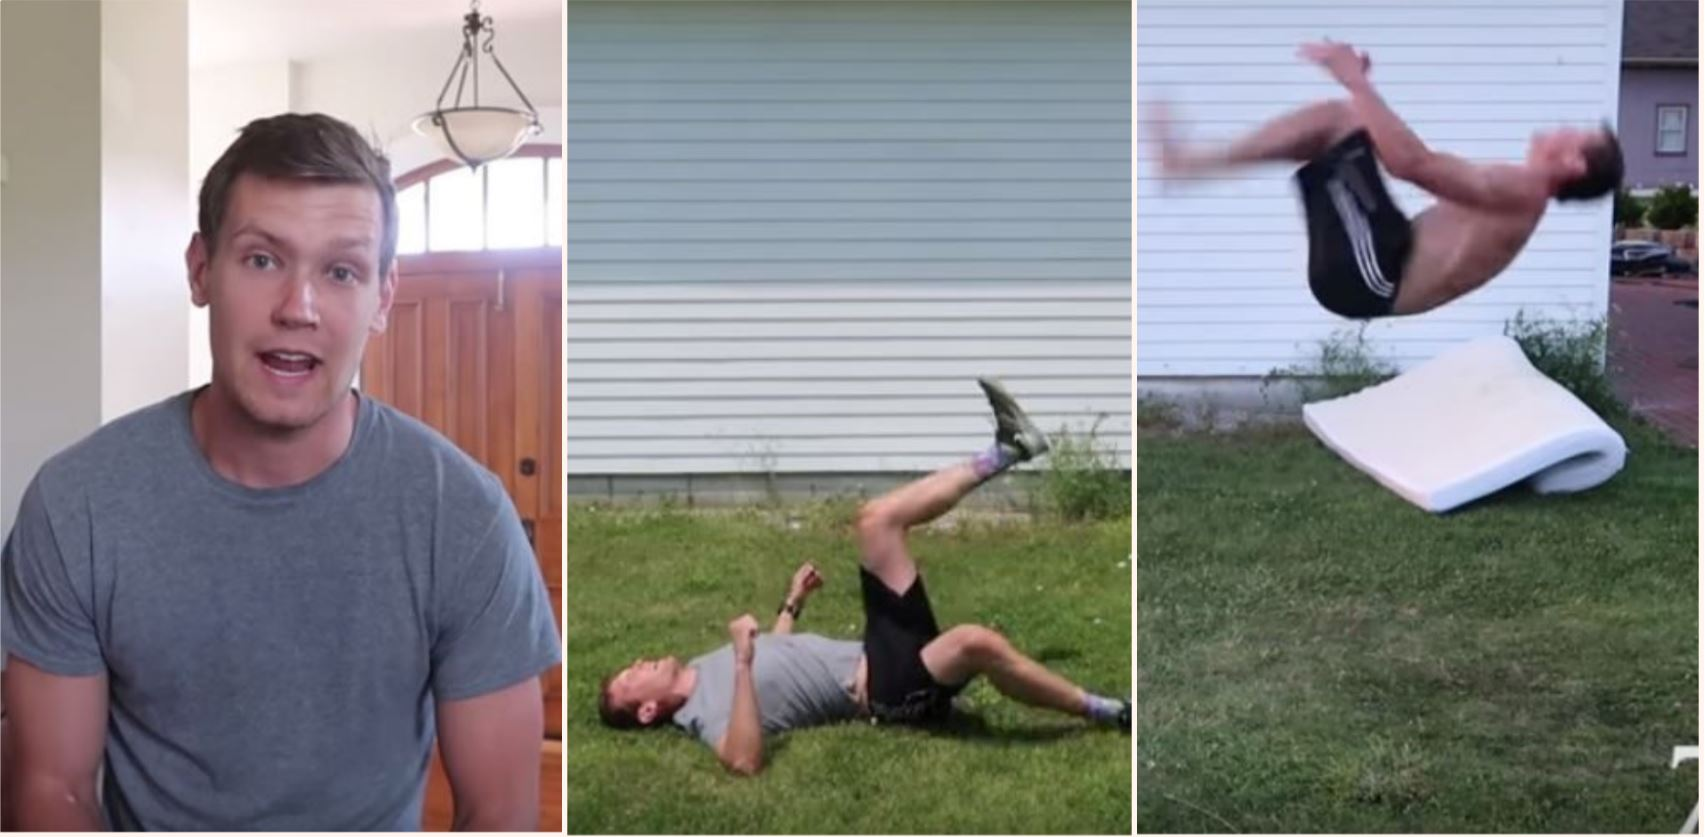 Legend bloke teaches himself to backflip in 6 hours